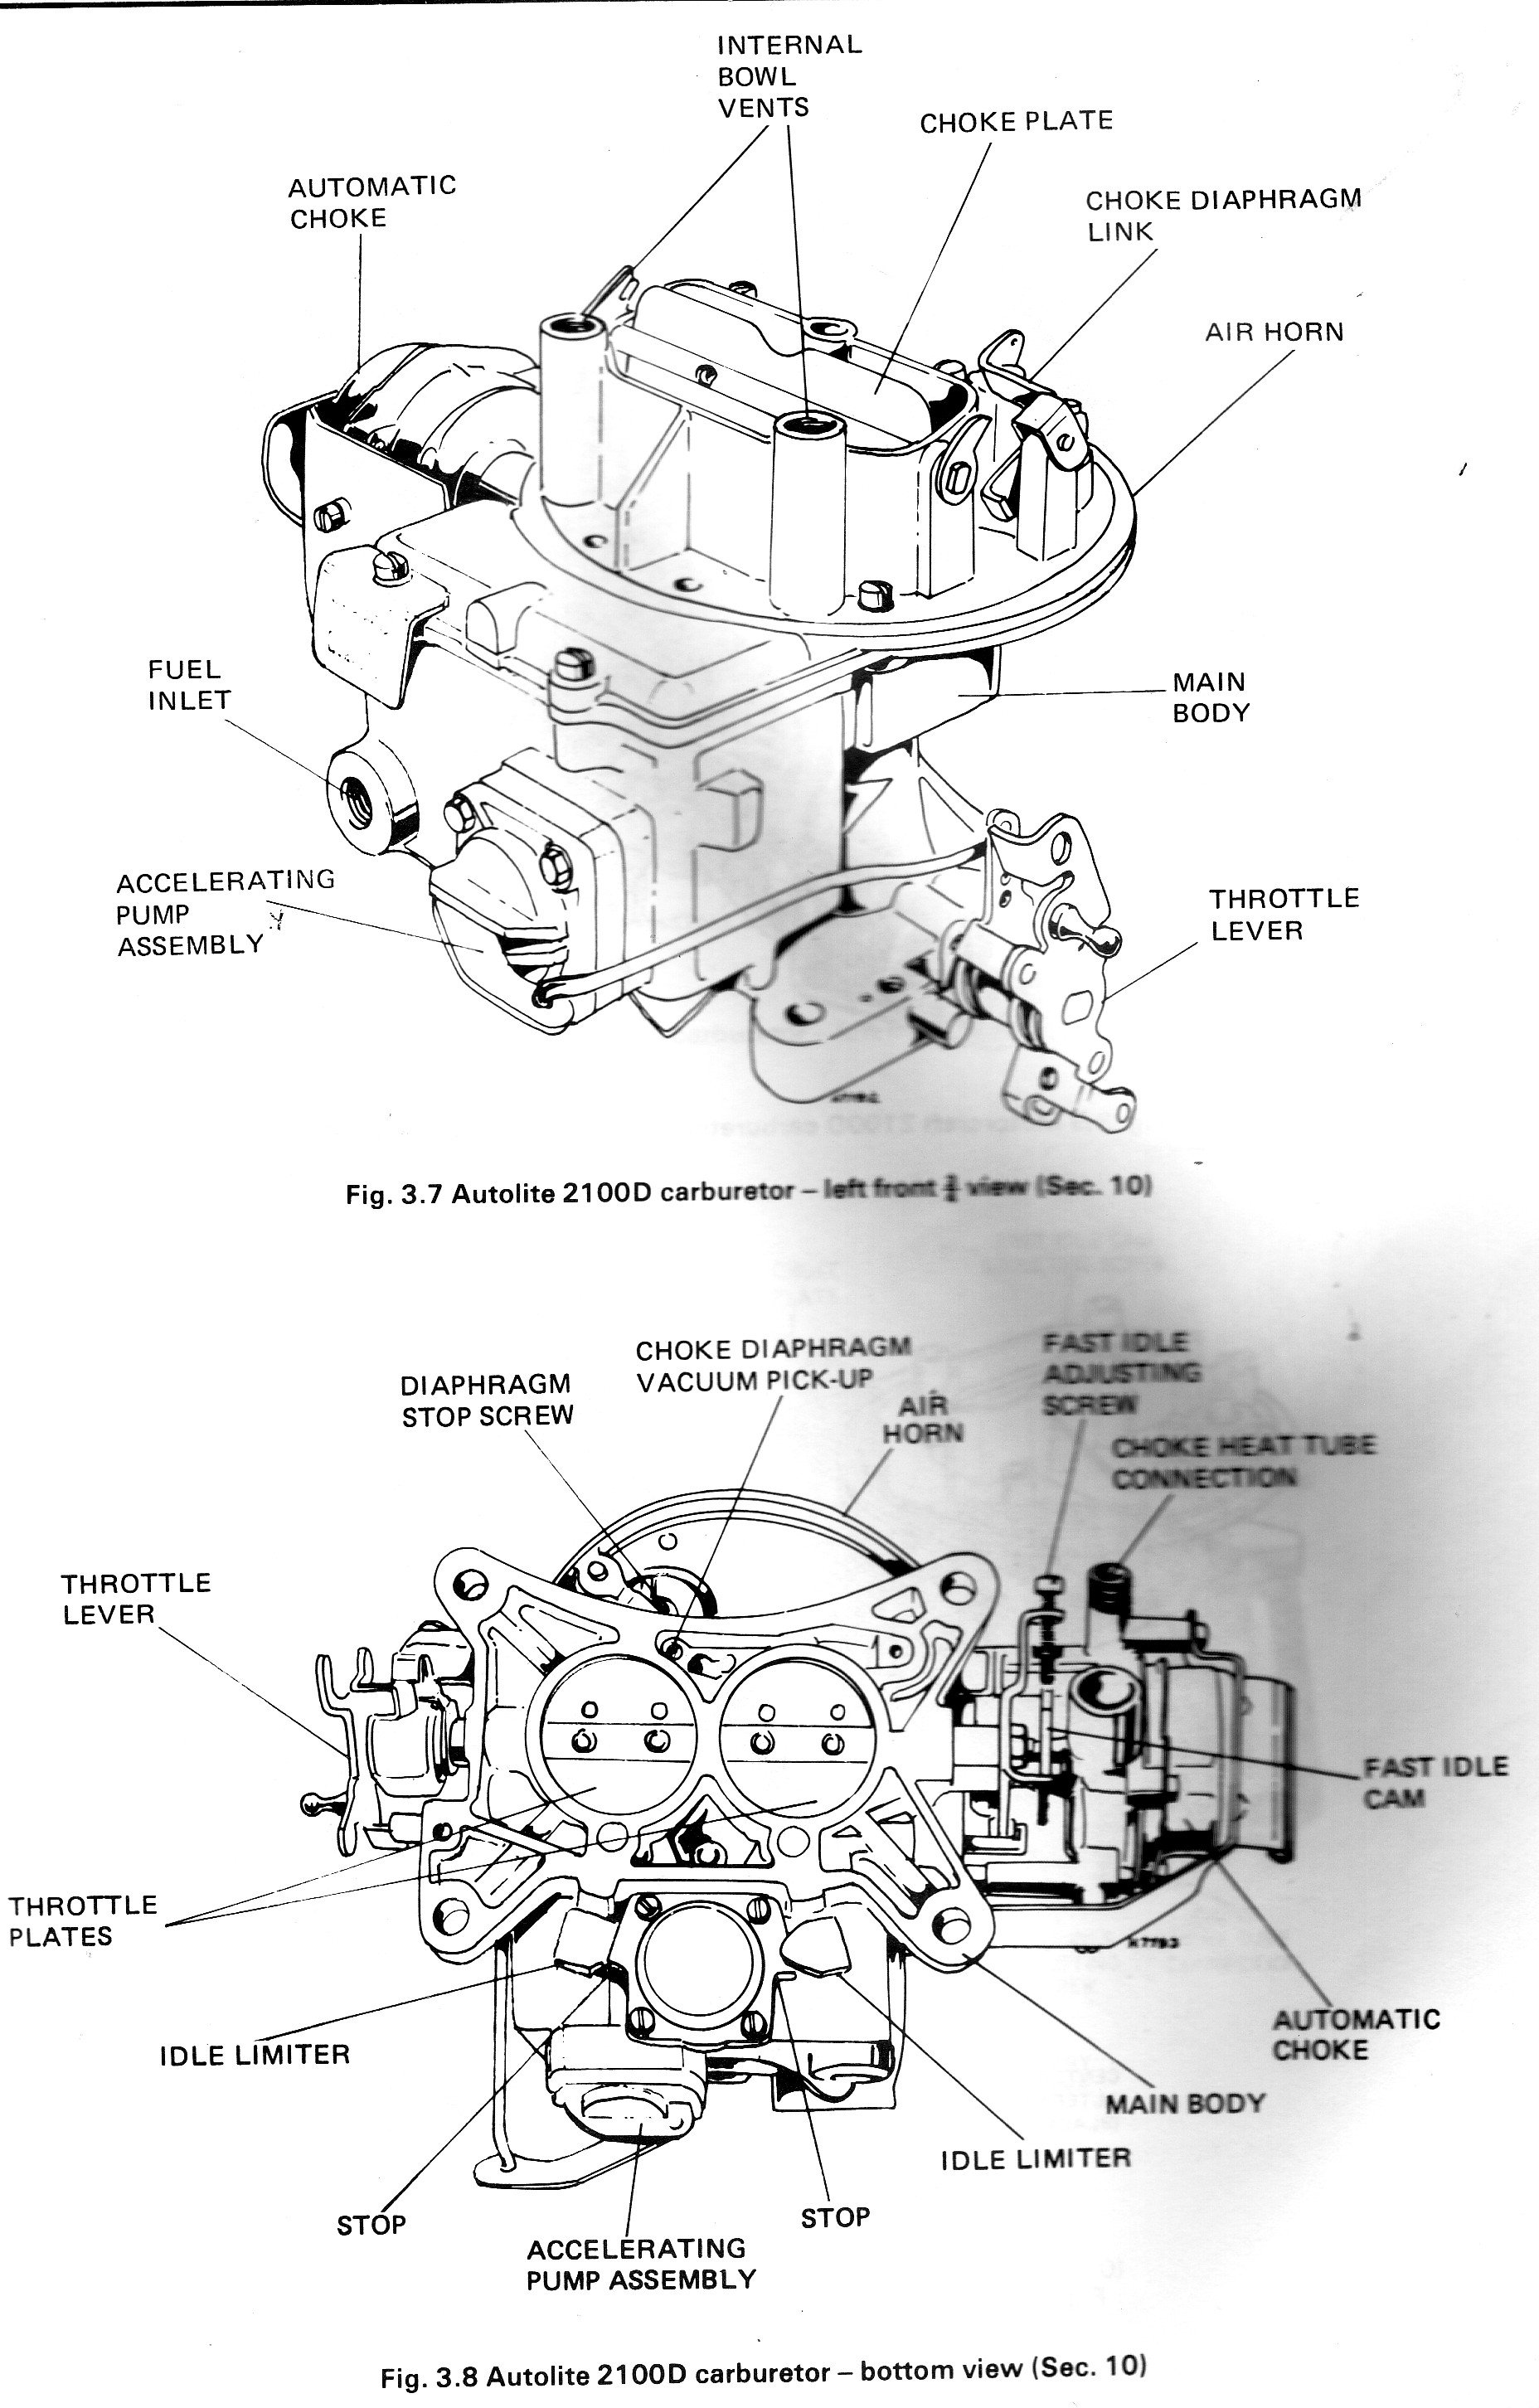 63153d1236399041 2100 carb diagram motorcraft 3 2100 carb diagram page 2 ford mustang forum Motorcraft 2150 Carburetor Identification at cita.asia